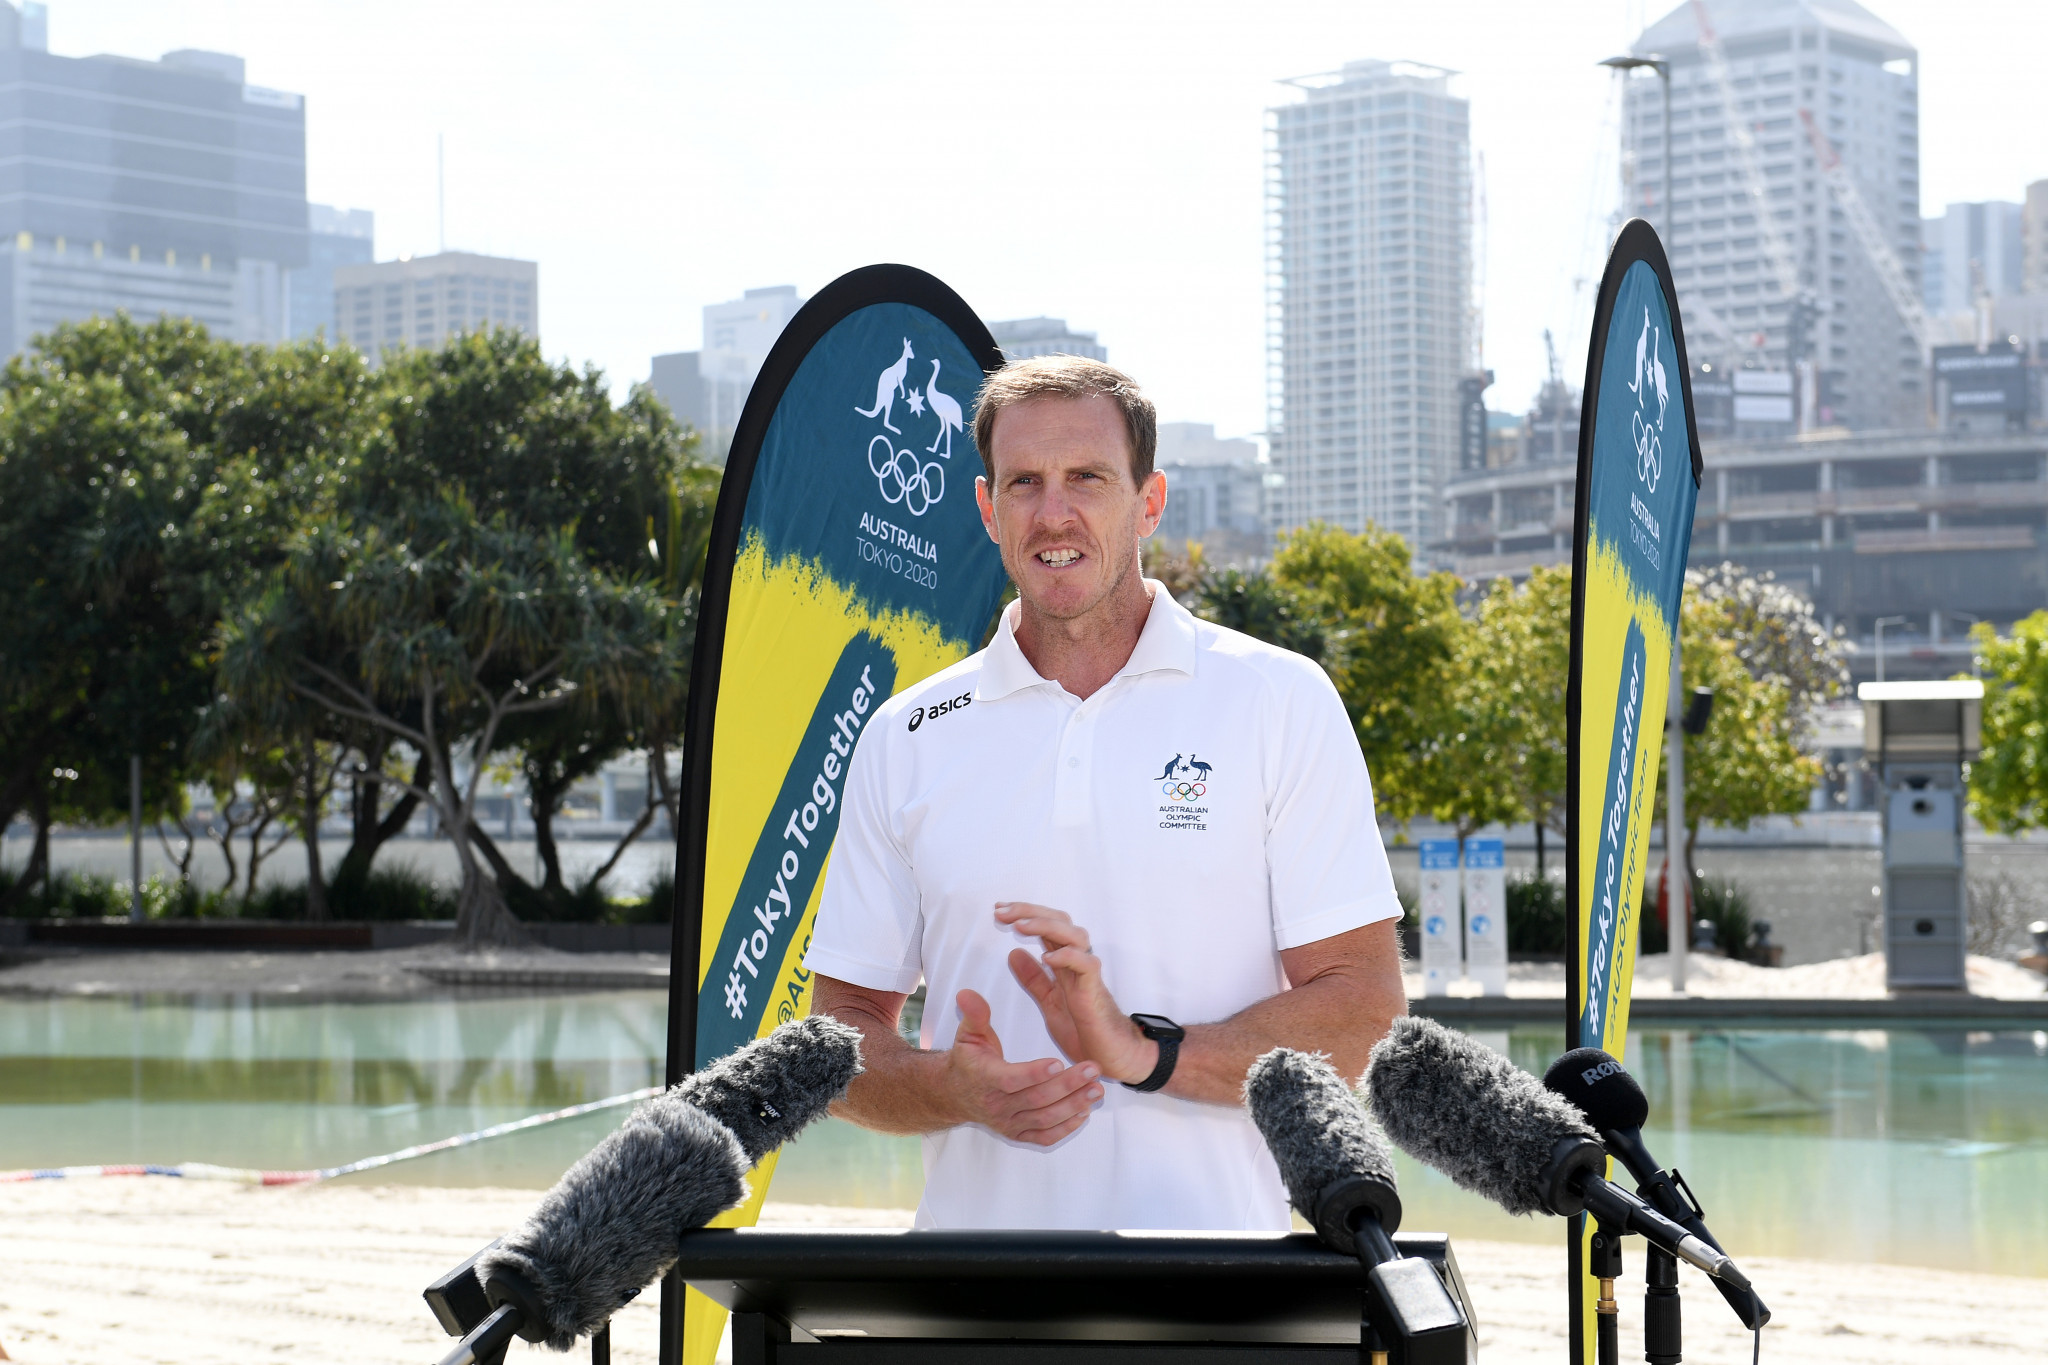 Scrapping medal target will help Australia thrive at Tokyo 2020, Wallace claims